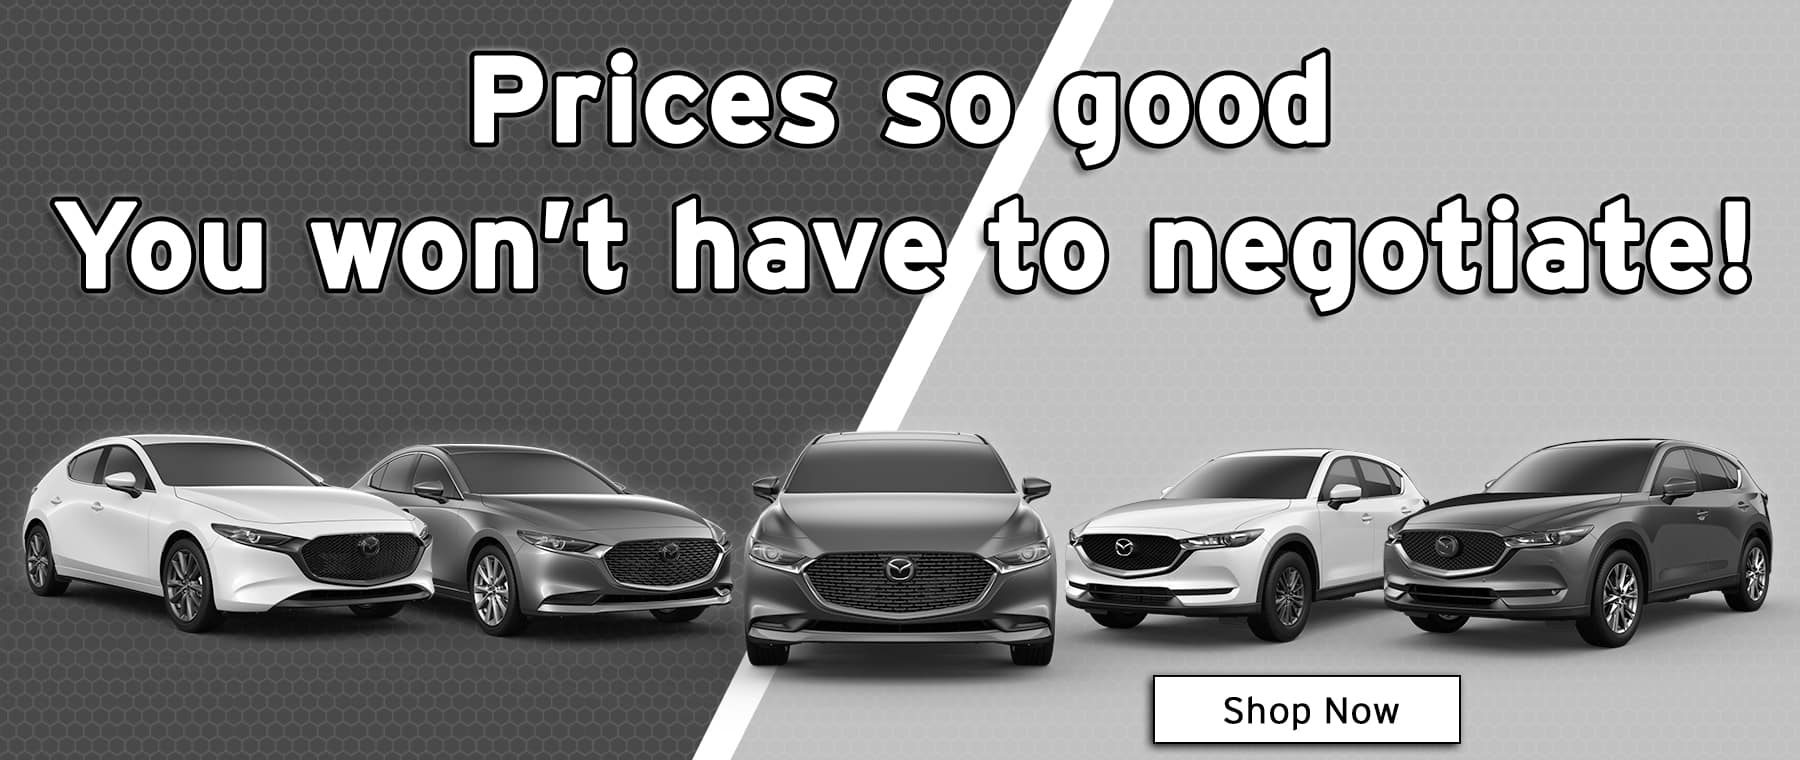 Prices so good you won't have to negotiate!